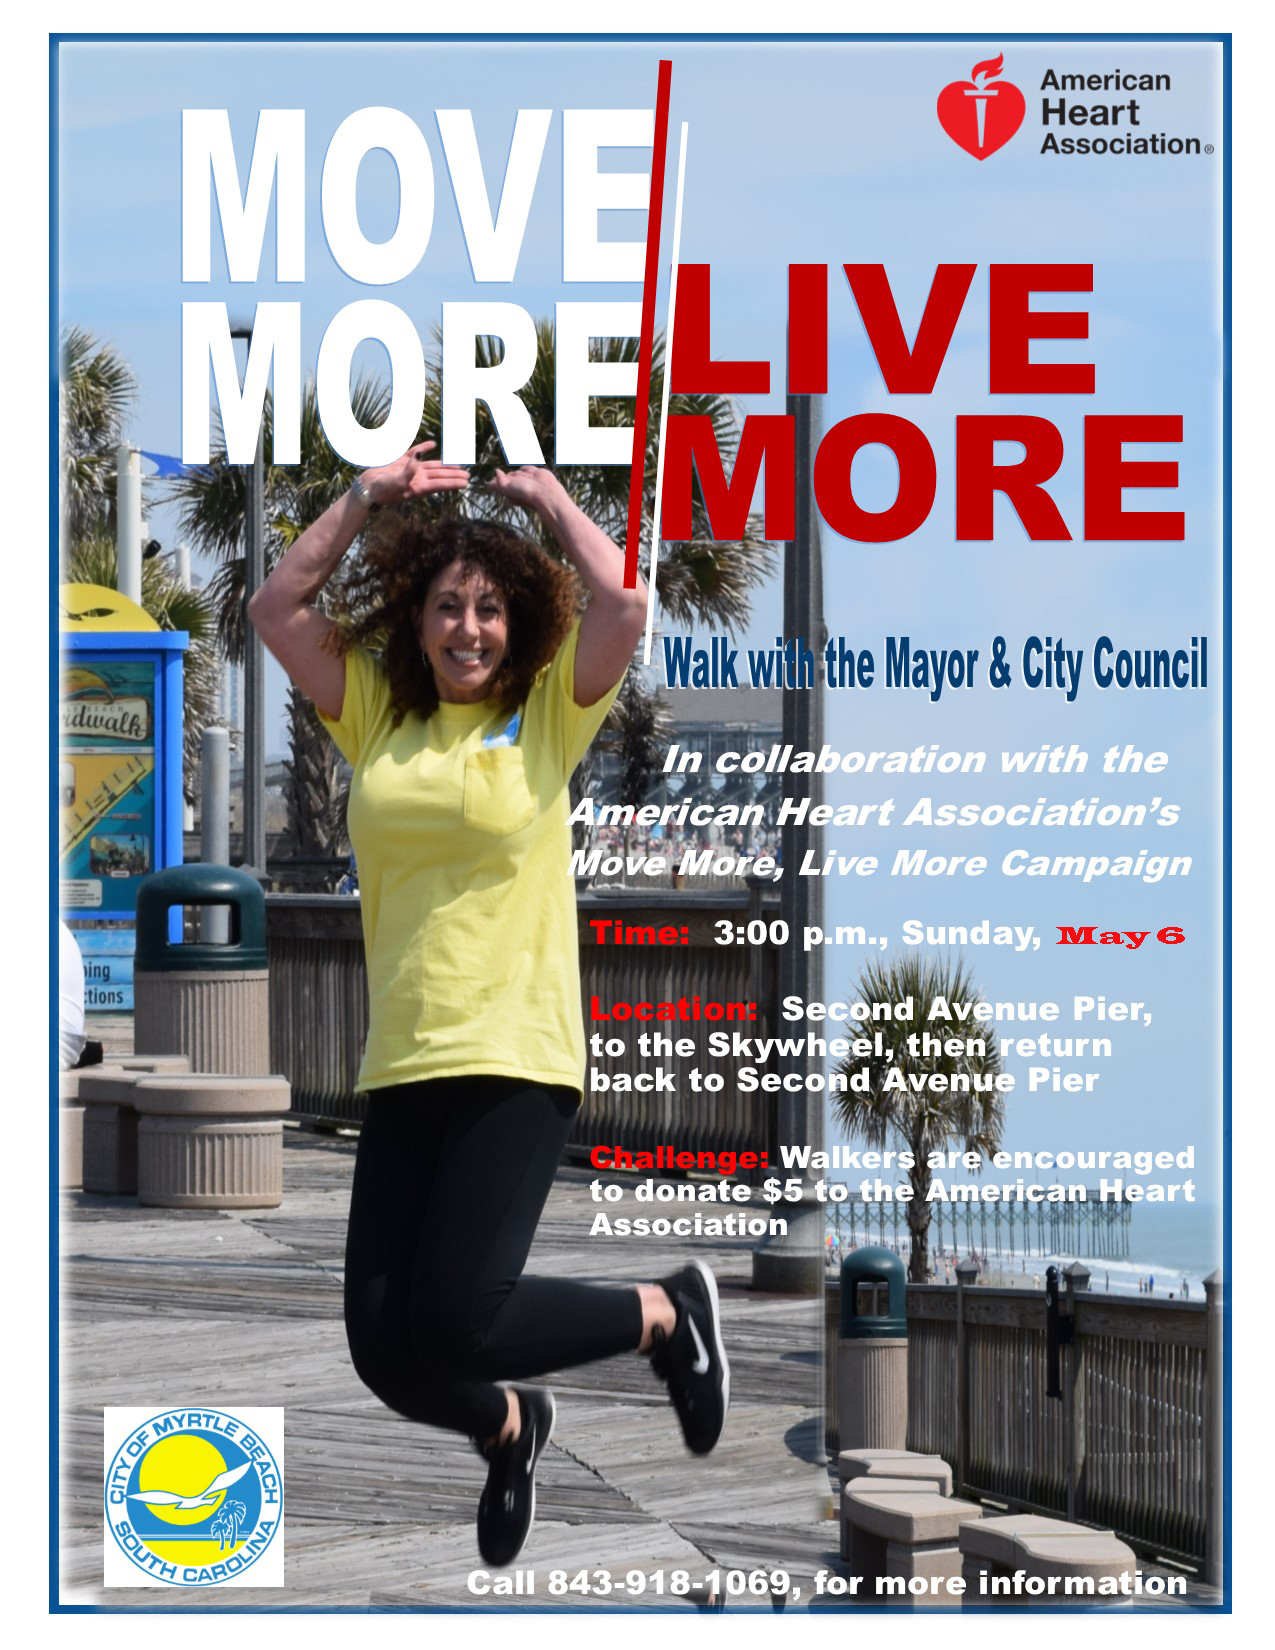 Mayor Brenda Heart Walk Flier